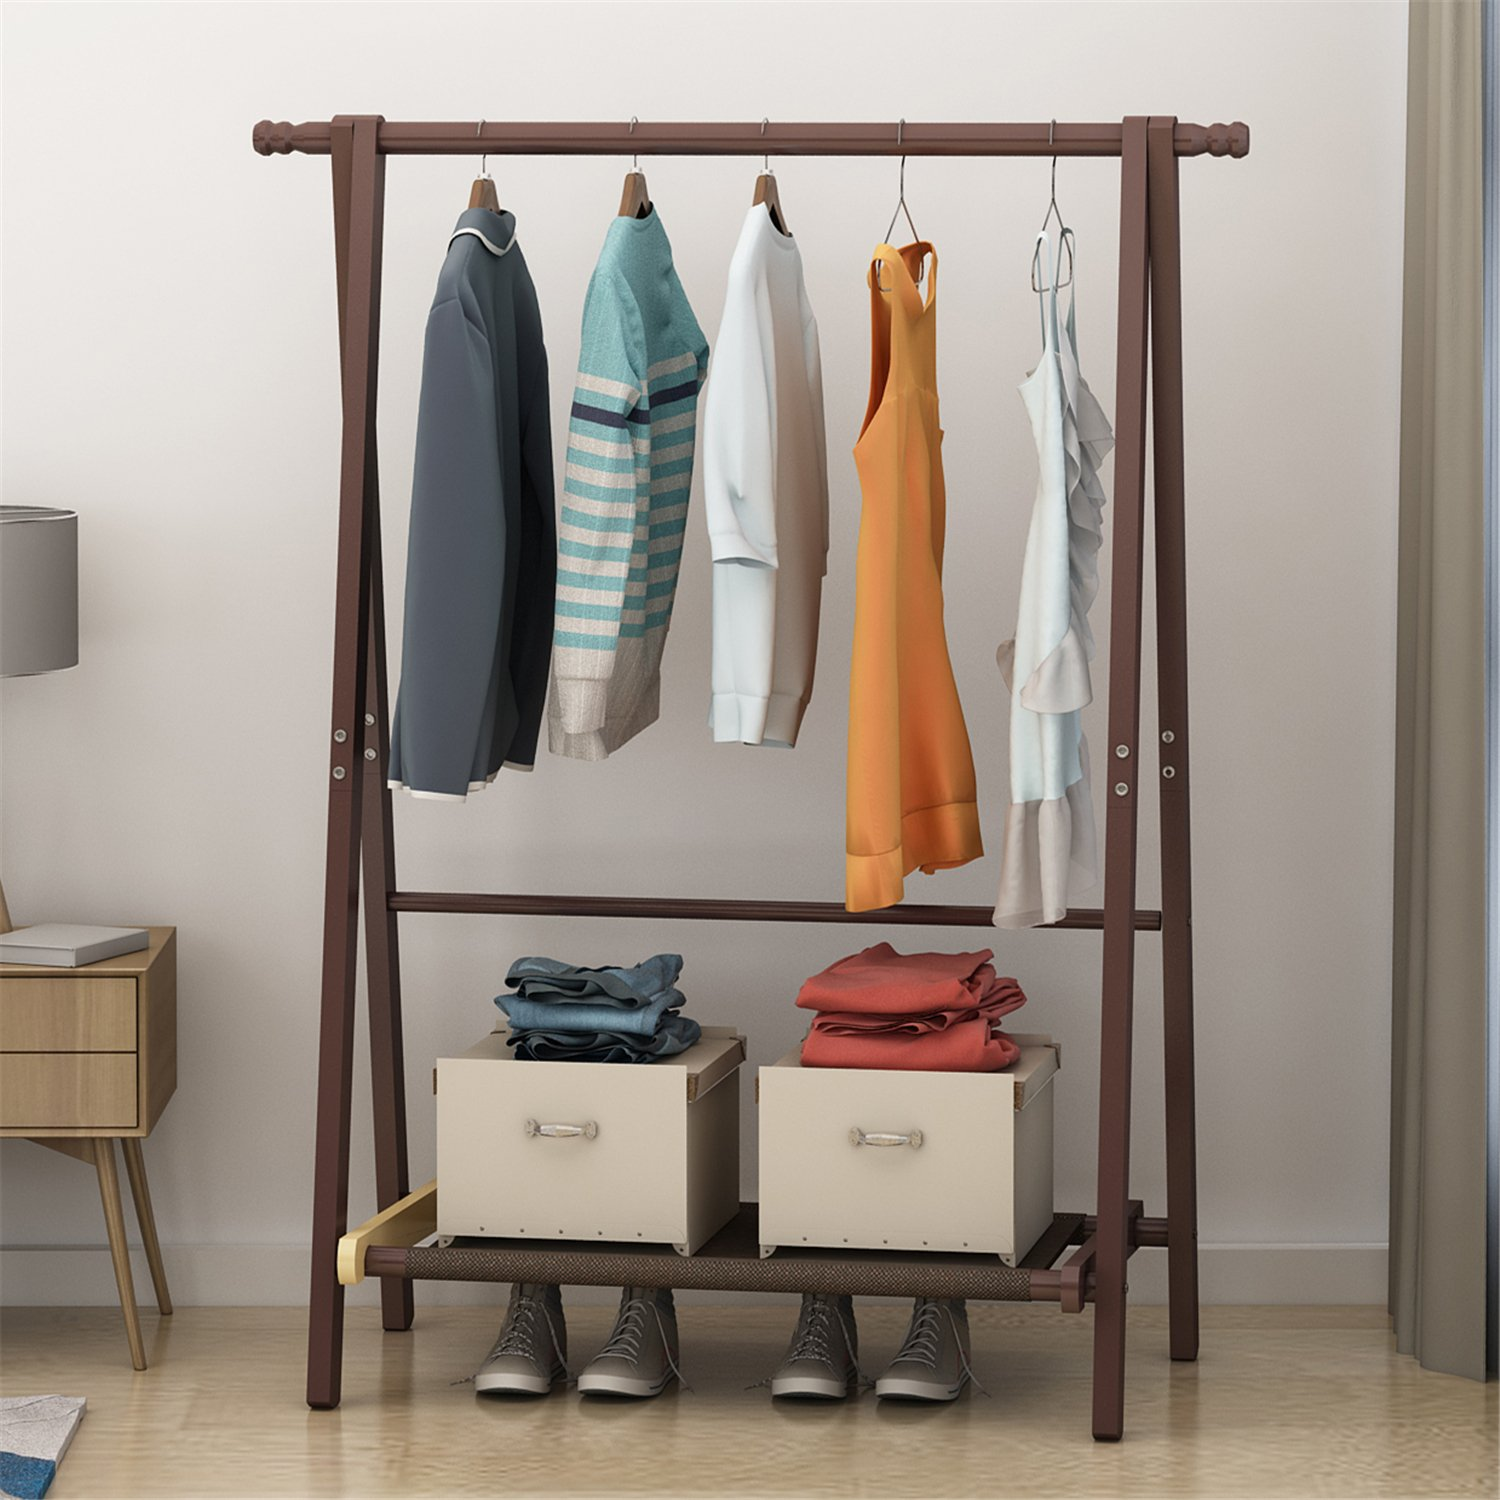 DlandHome Solid Wood Clothing Garment Rack, Entryway Free Standing Coat Stand Organizer Lower Storage Shelf Shoes Clothes, BS2001-BN Brown, 1 Pack